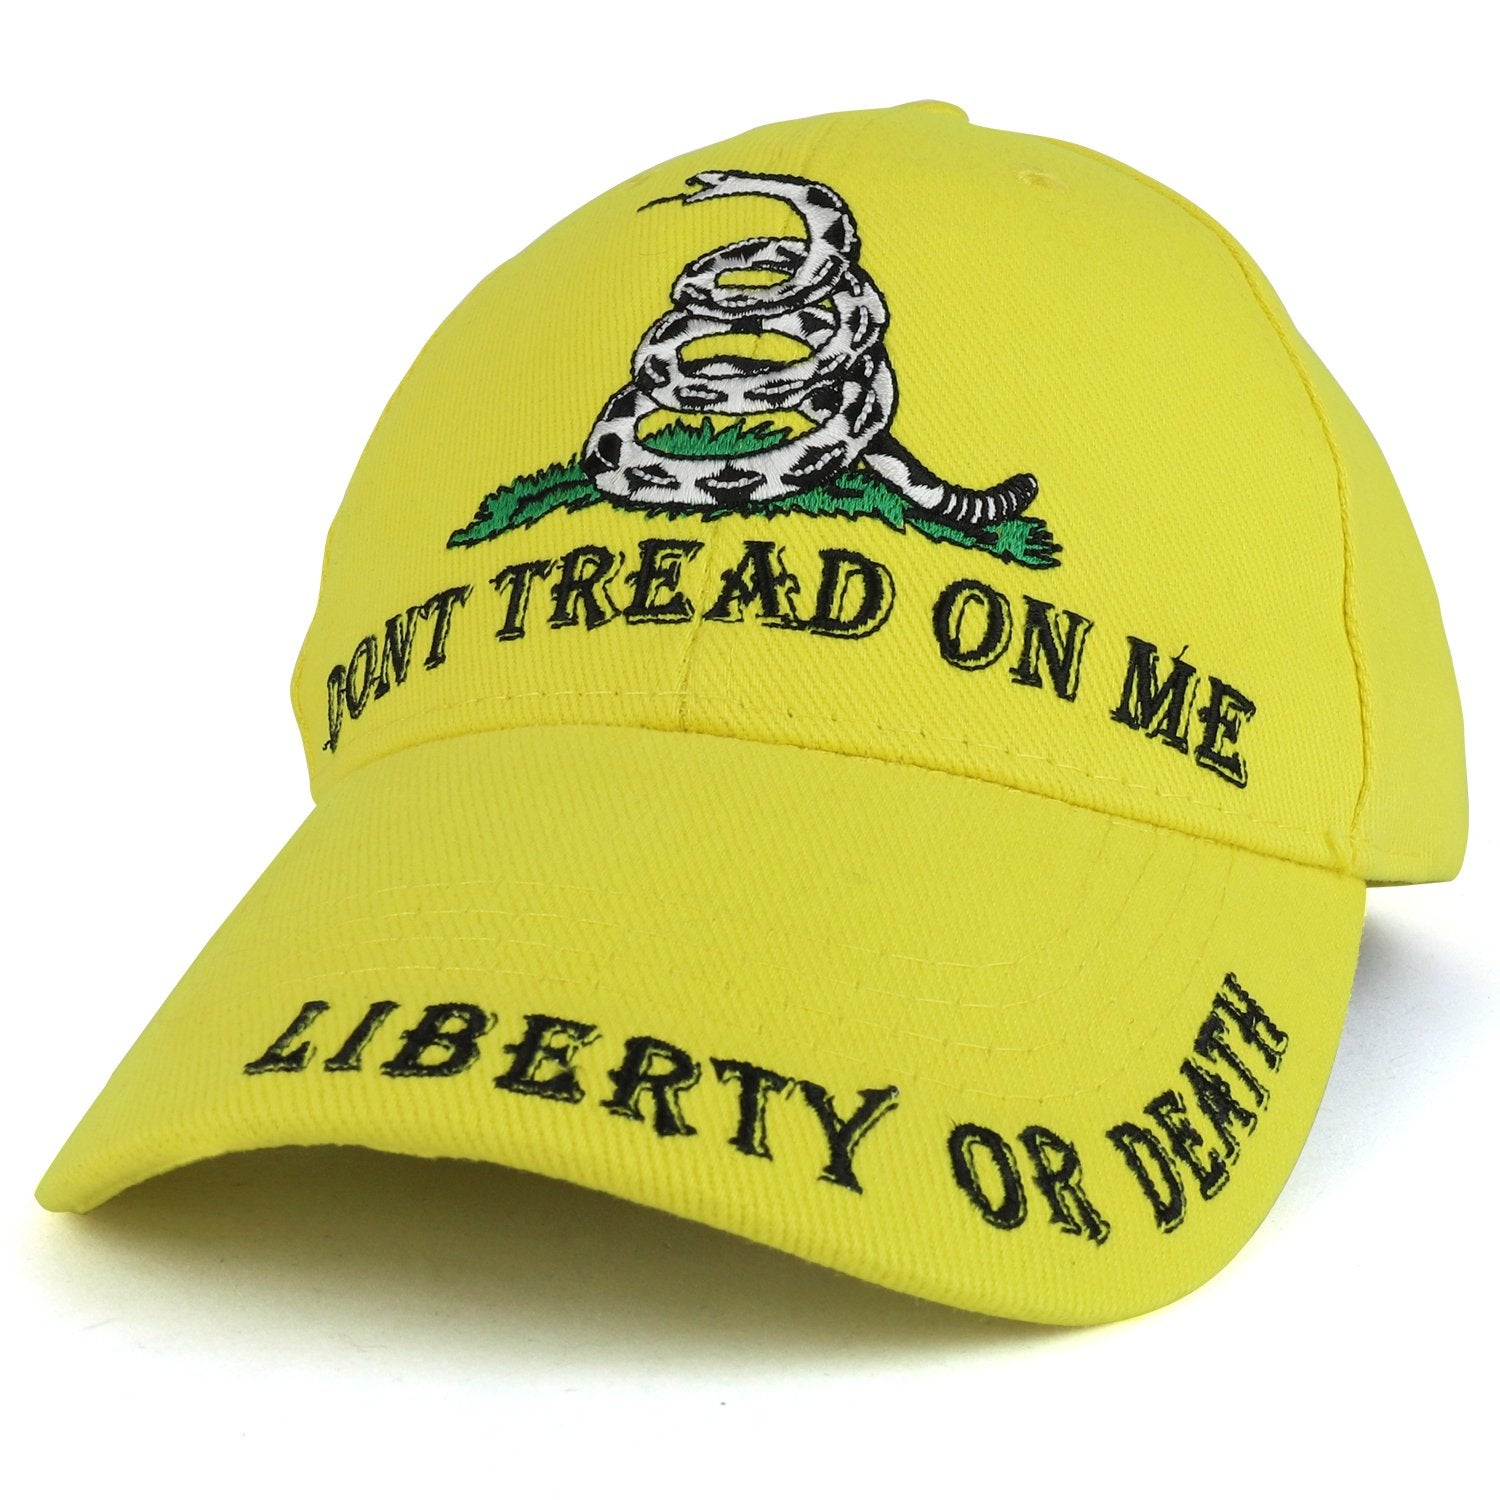 ed2ede59ada Armycrew Tread On Me Snake Liberty or Death Embroidered Structured Baseball  Cap